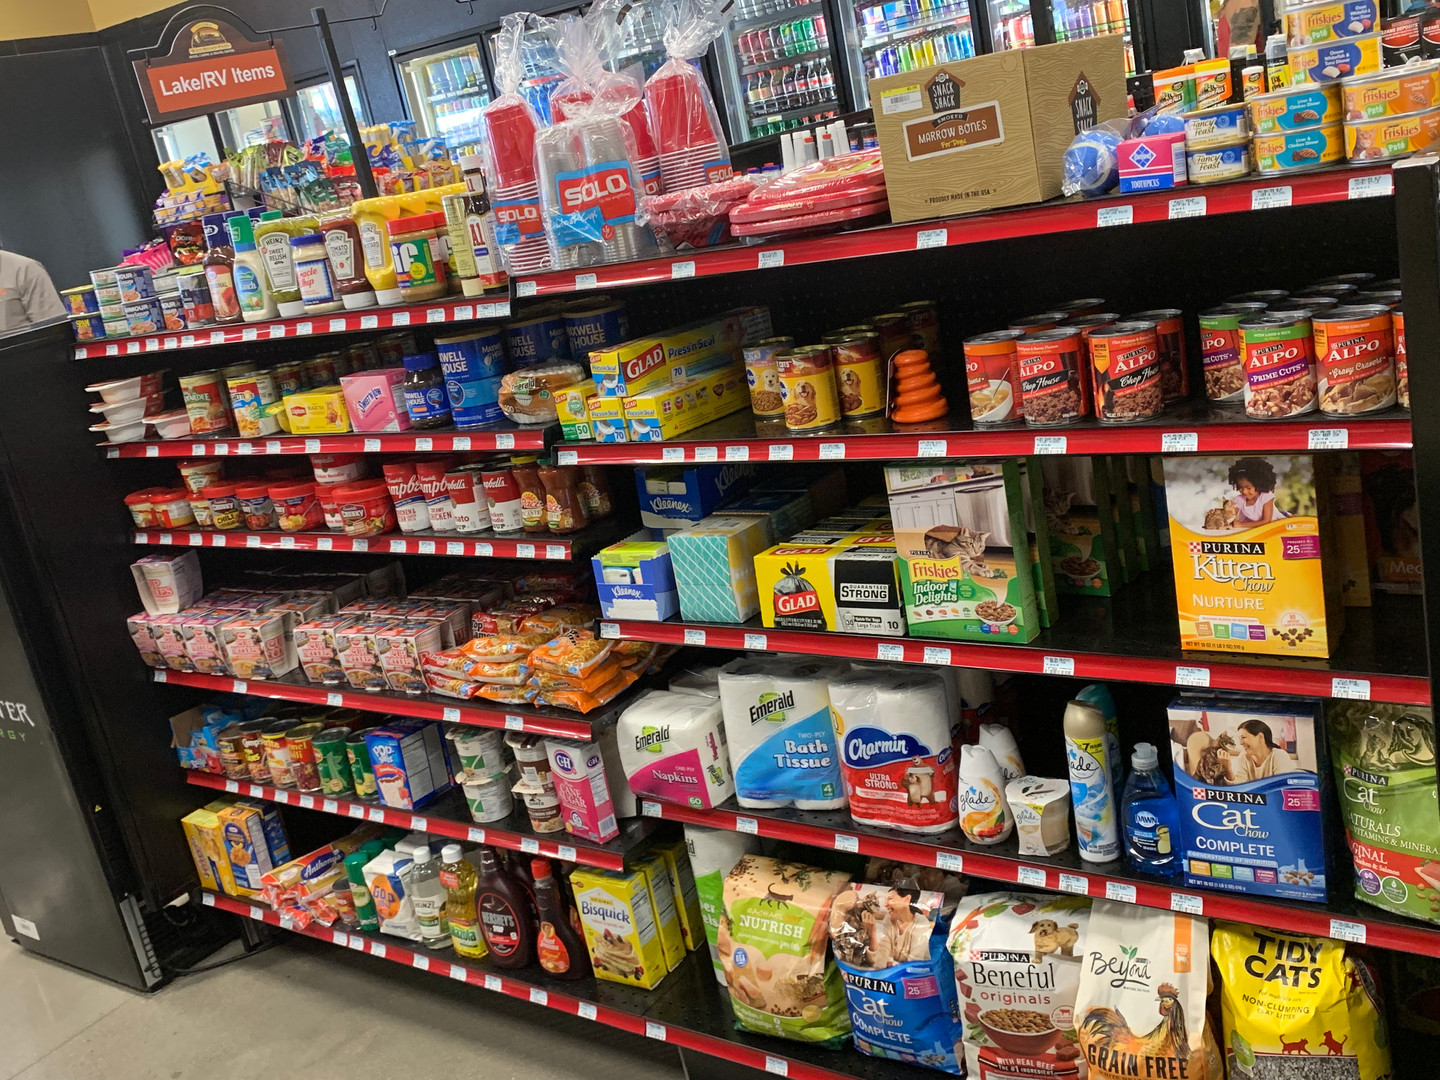 Canned goods & Pet Supplies